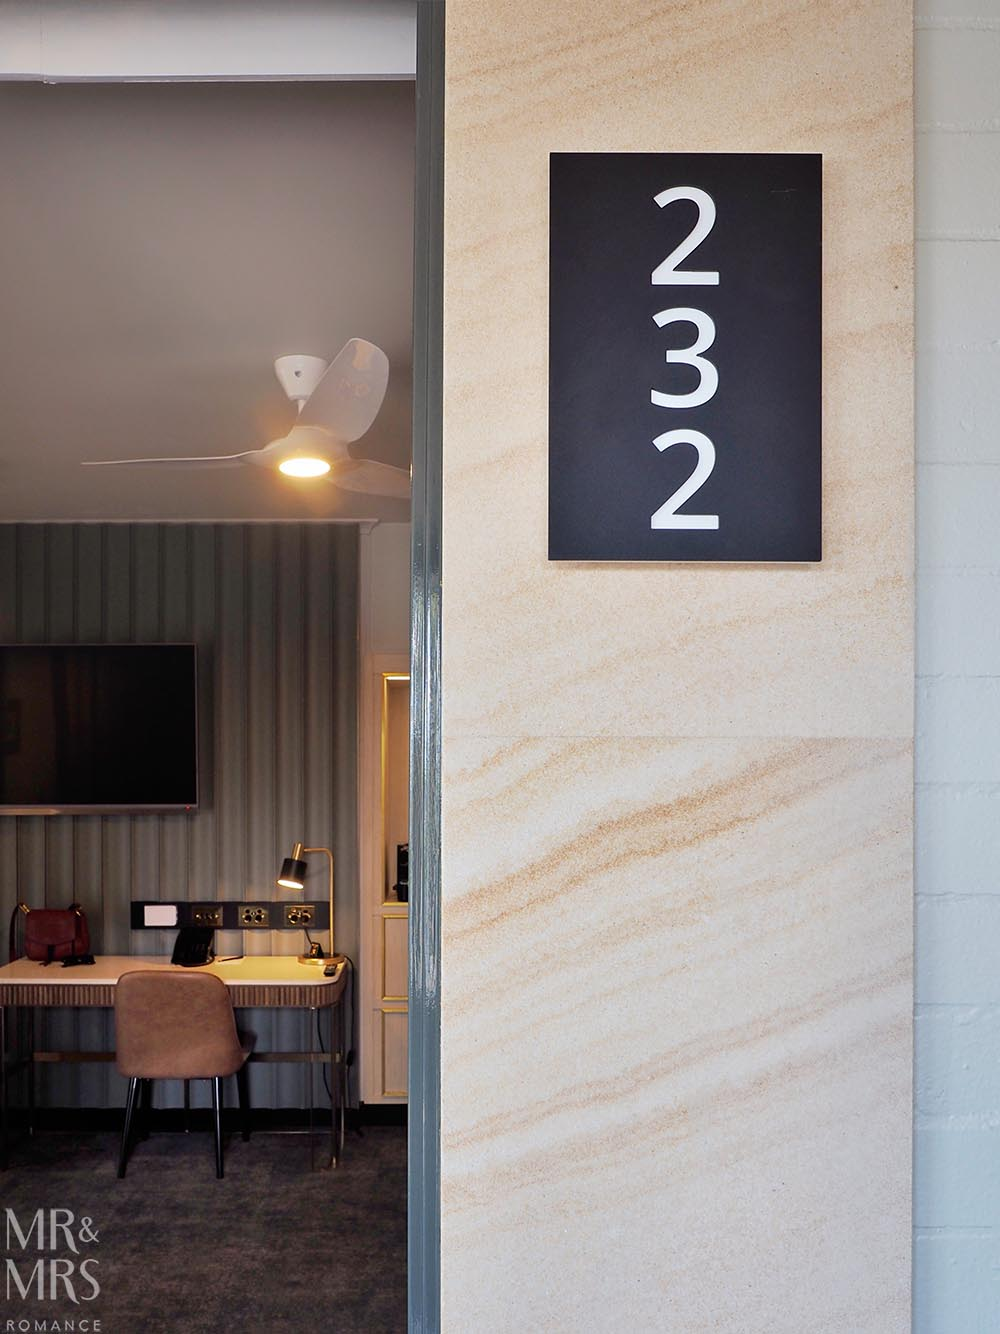 Where to stay in Tamworth NSW - Powerhouse Hotel Tamworth by Rydges - room number